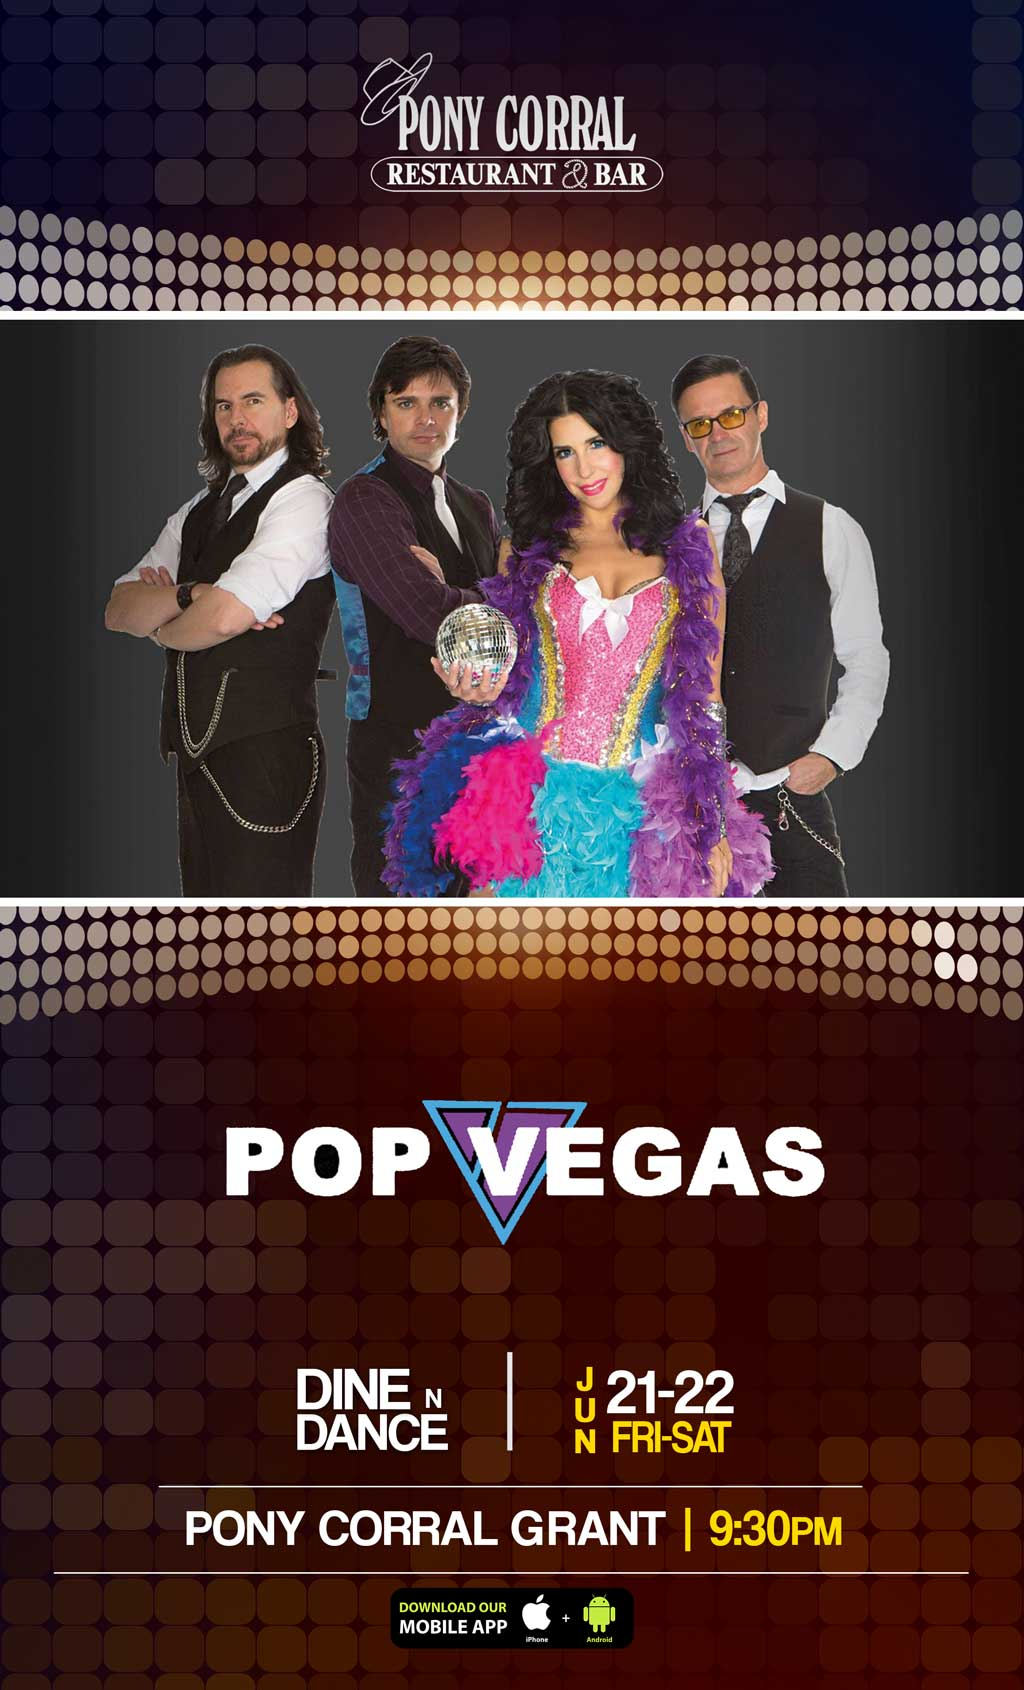 Pop Vegas Band at Grant | Pony Corral Restaurant & Bar | Winnipeg